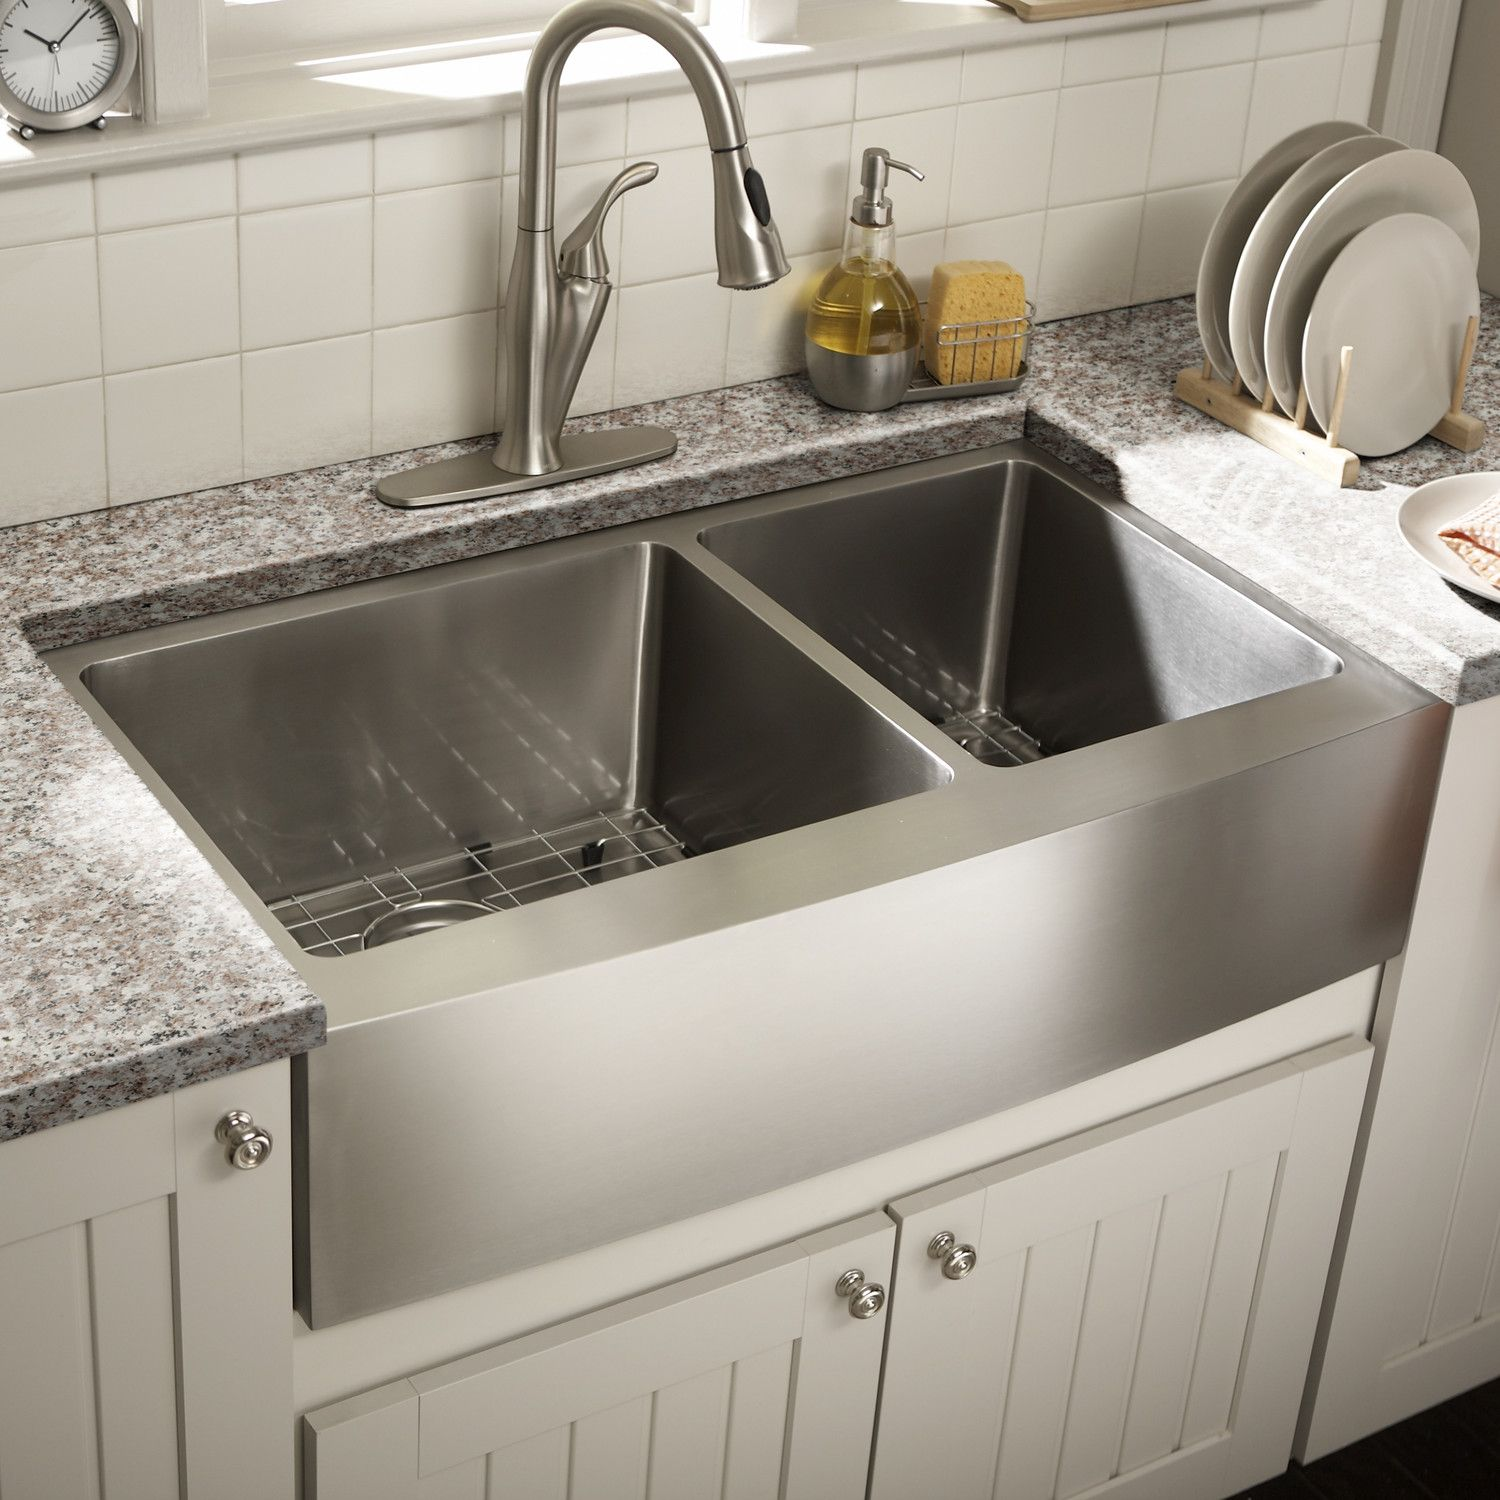 Want double stainless farmhouse sink Schon Farmhouse 36\